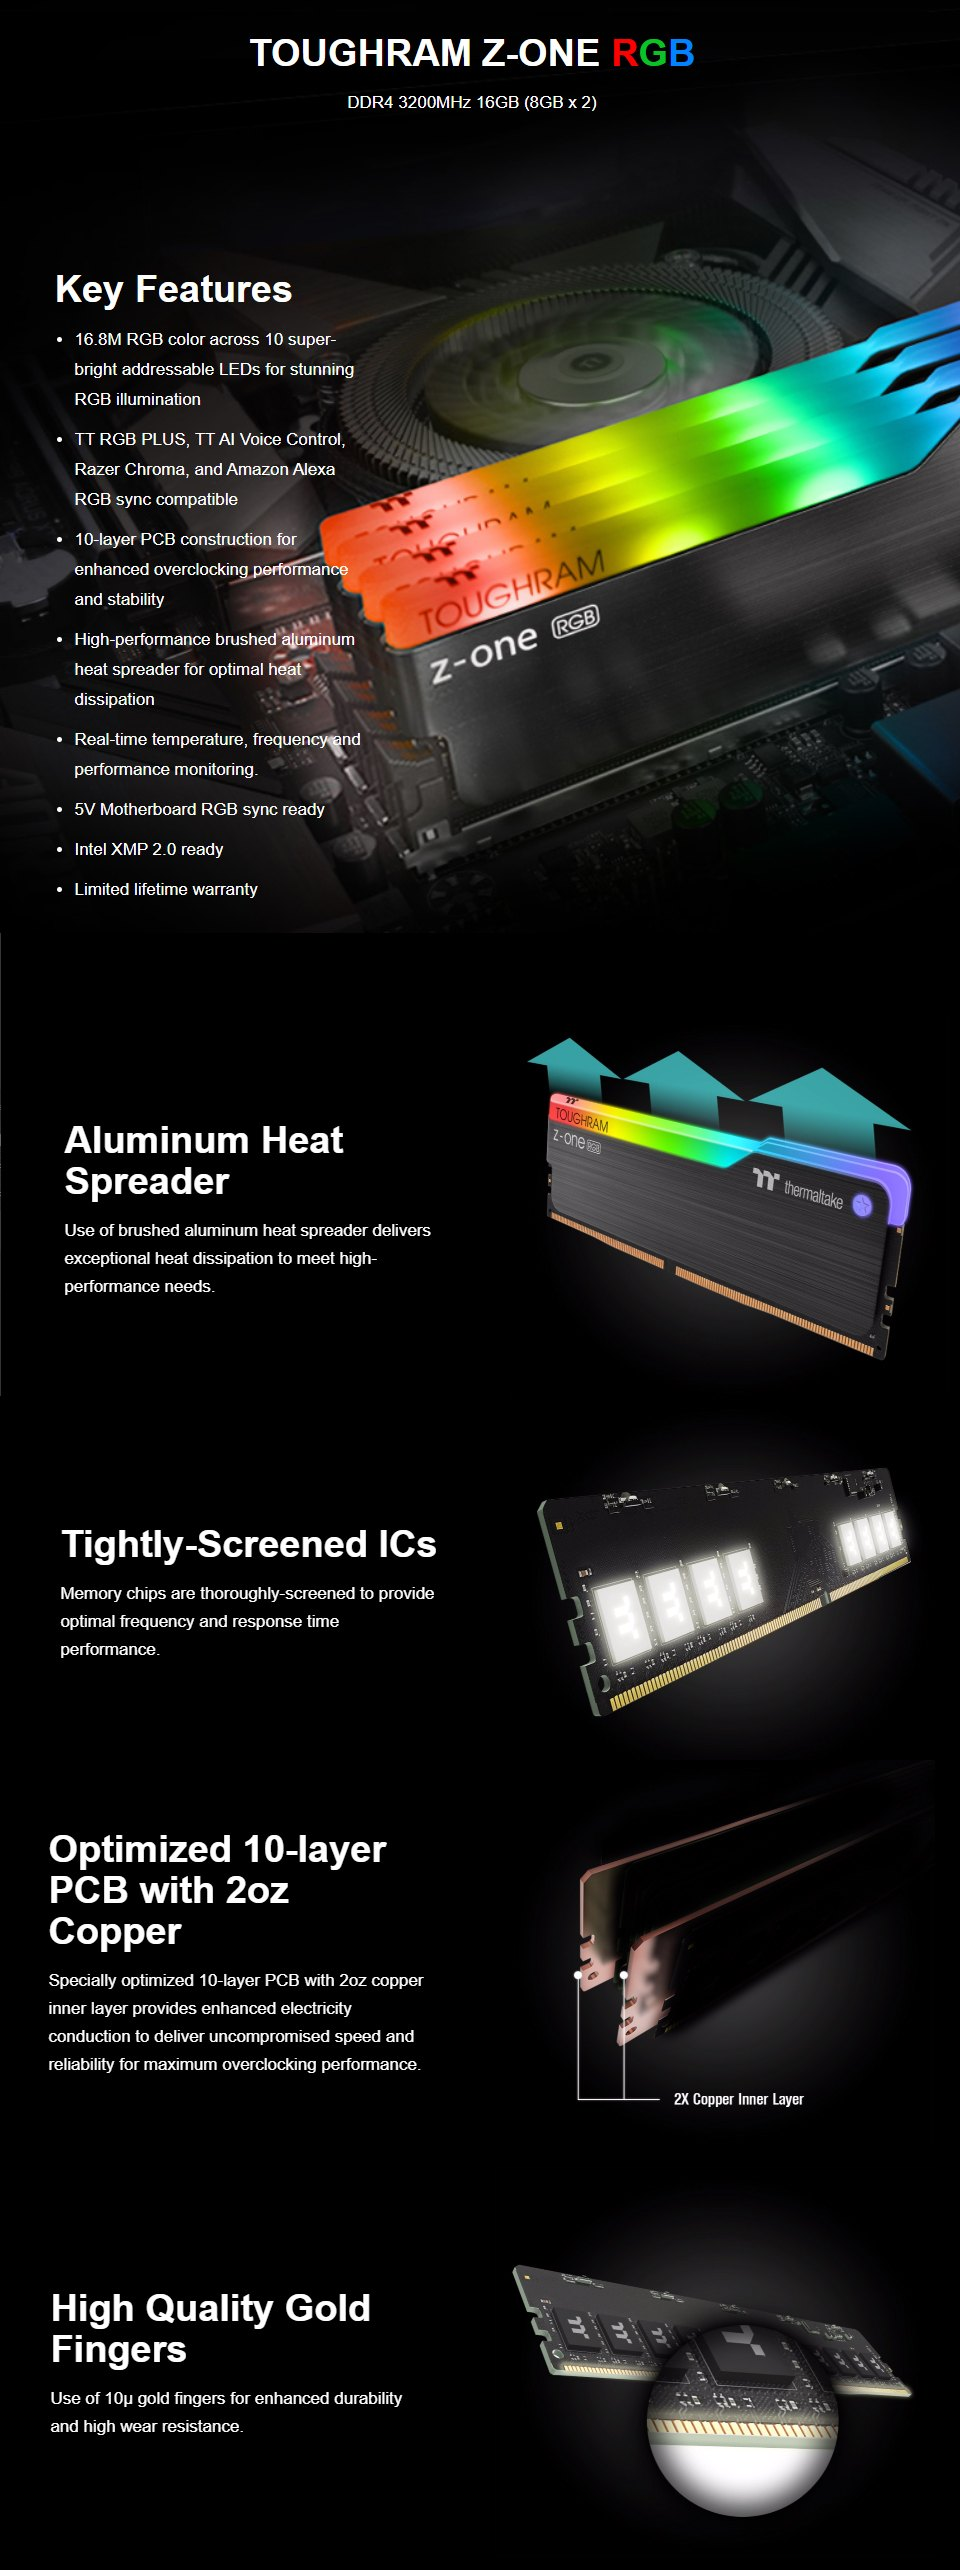 Thermaltake ToughRAM Z-ONE RGB 16GB (2x8GB) 3200MHz CL16 DDR4 features